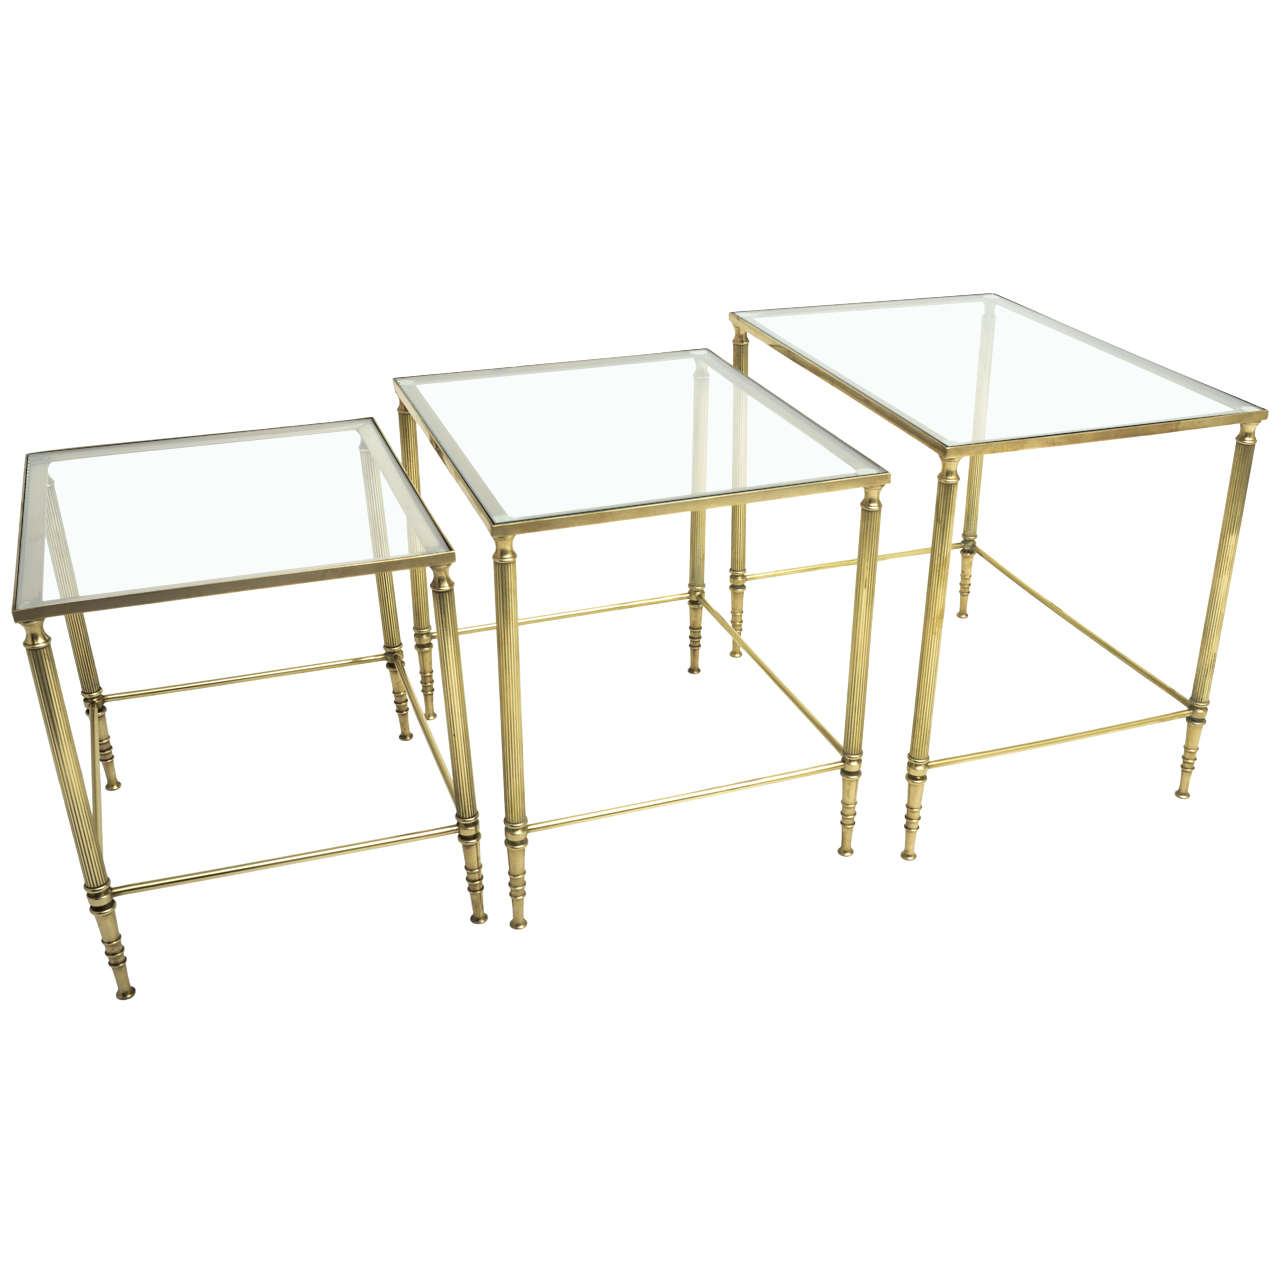 Glass Nesting Tables Mid Century Modern French Brass And Glass Nesting Tables